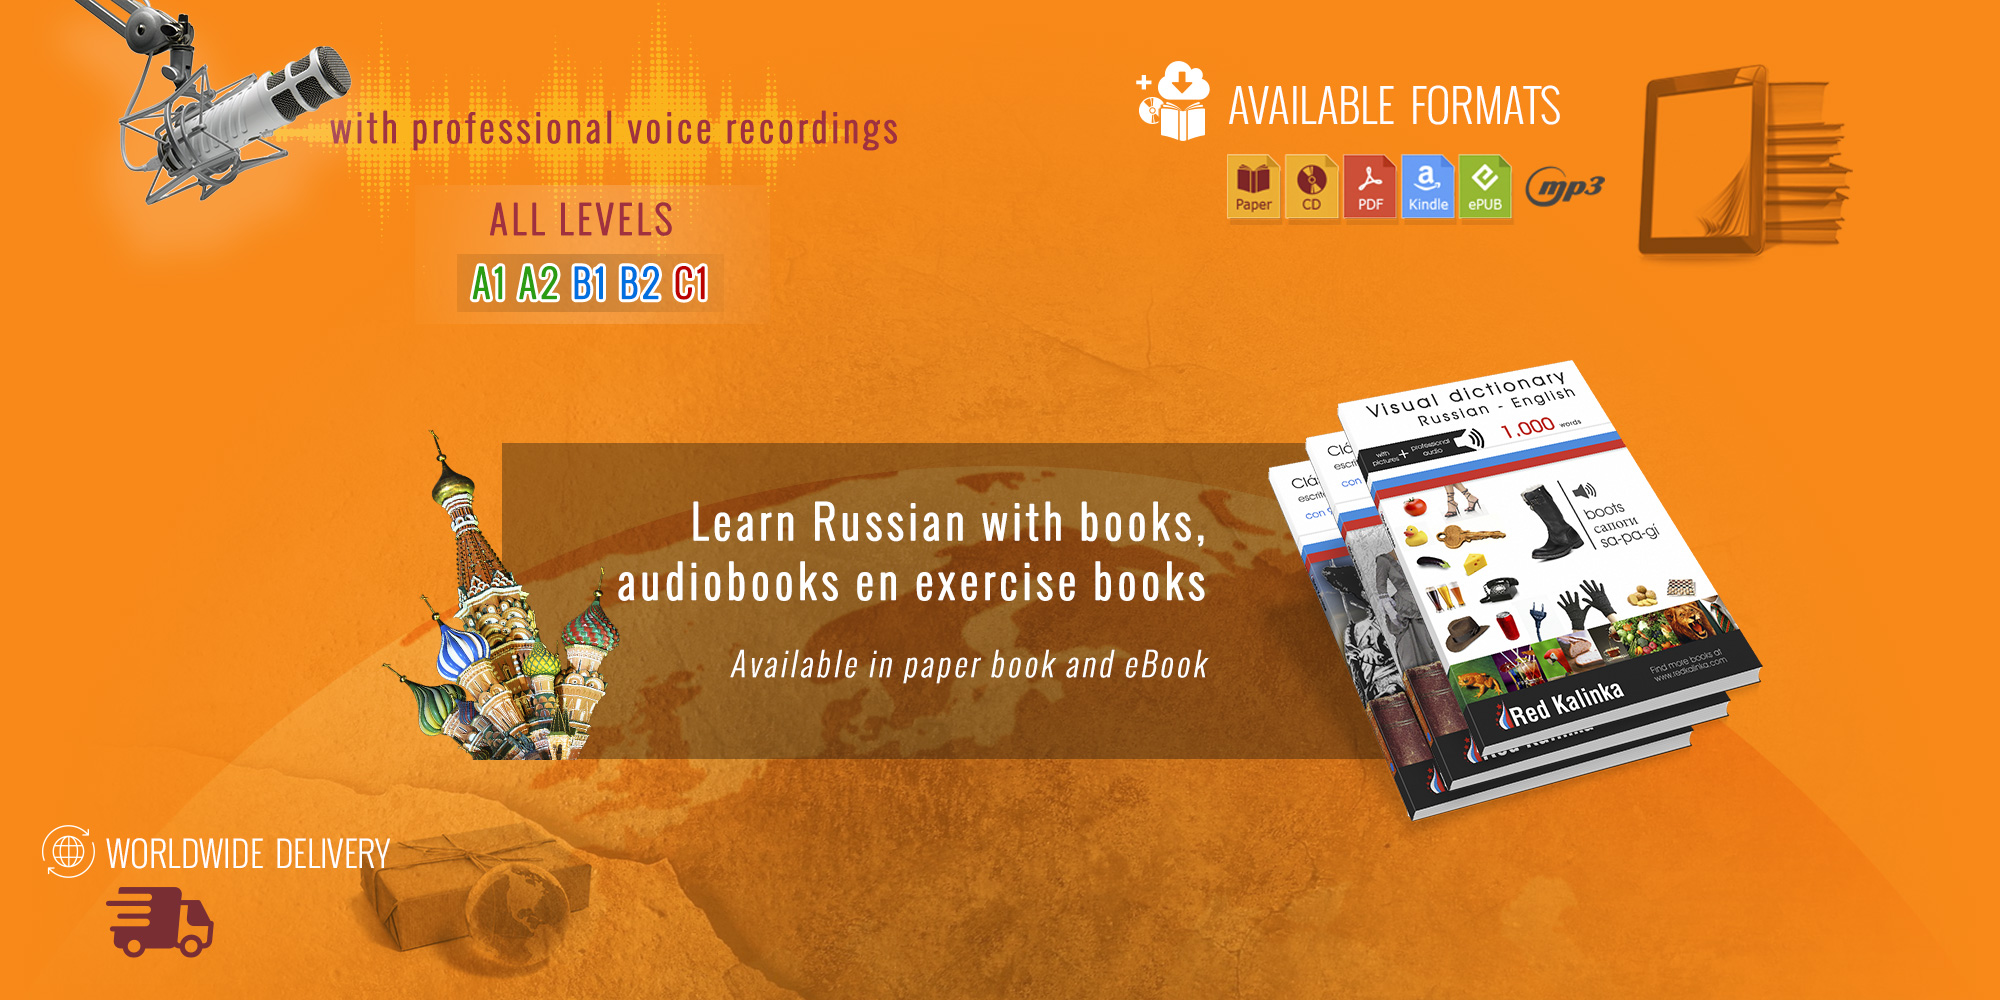 Learn with Ebooks to Learn Russian